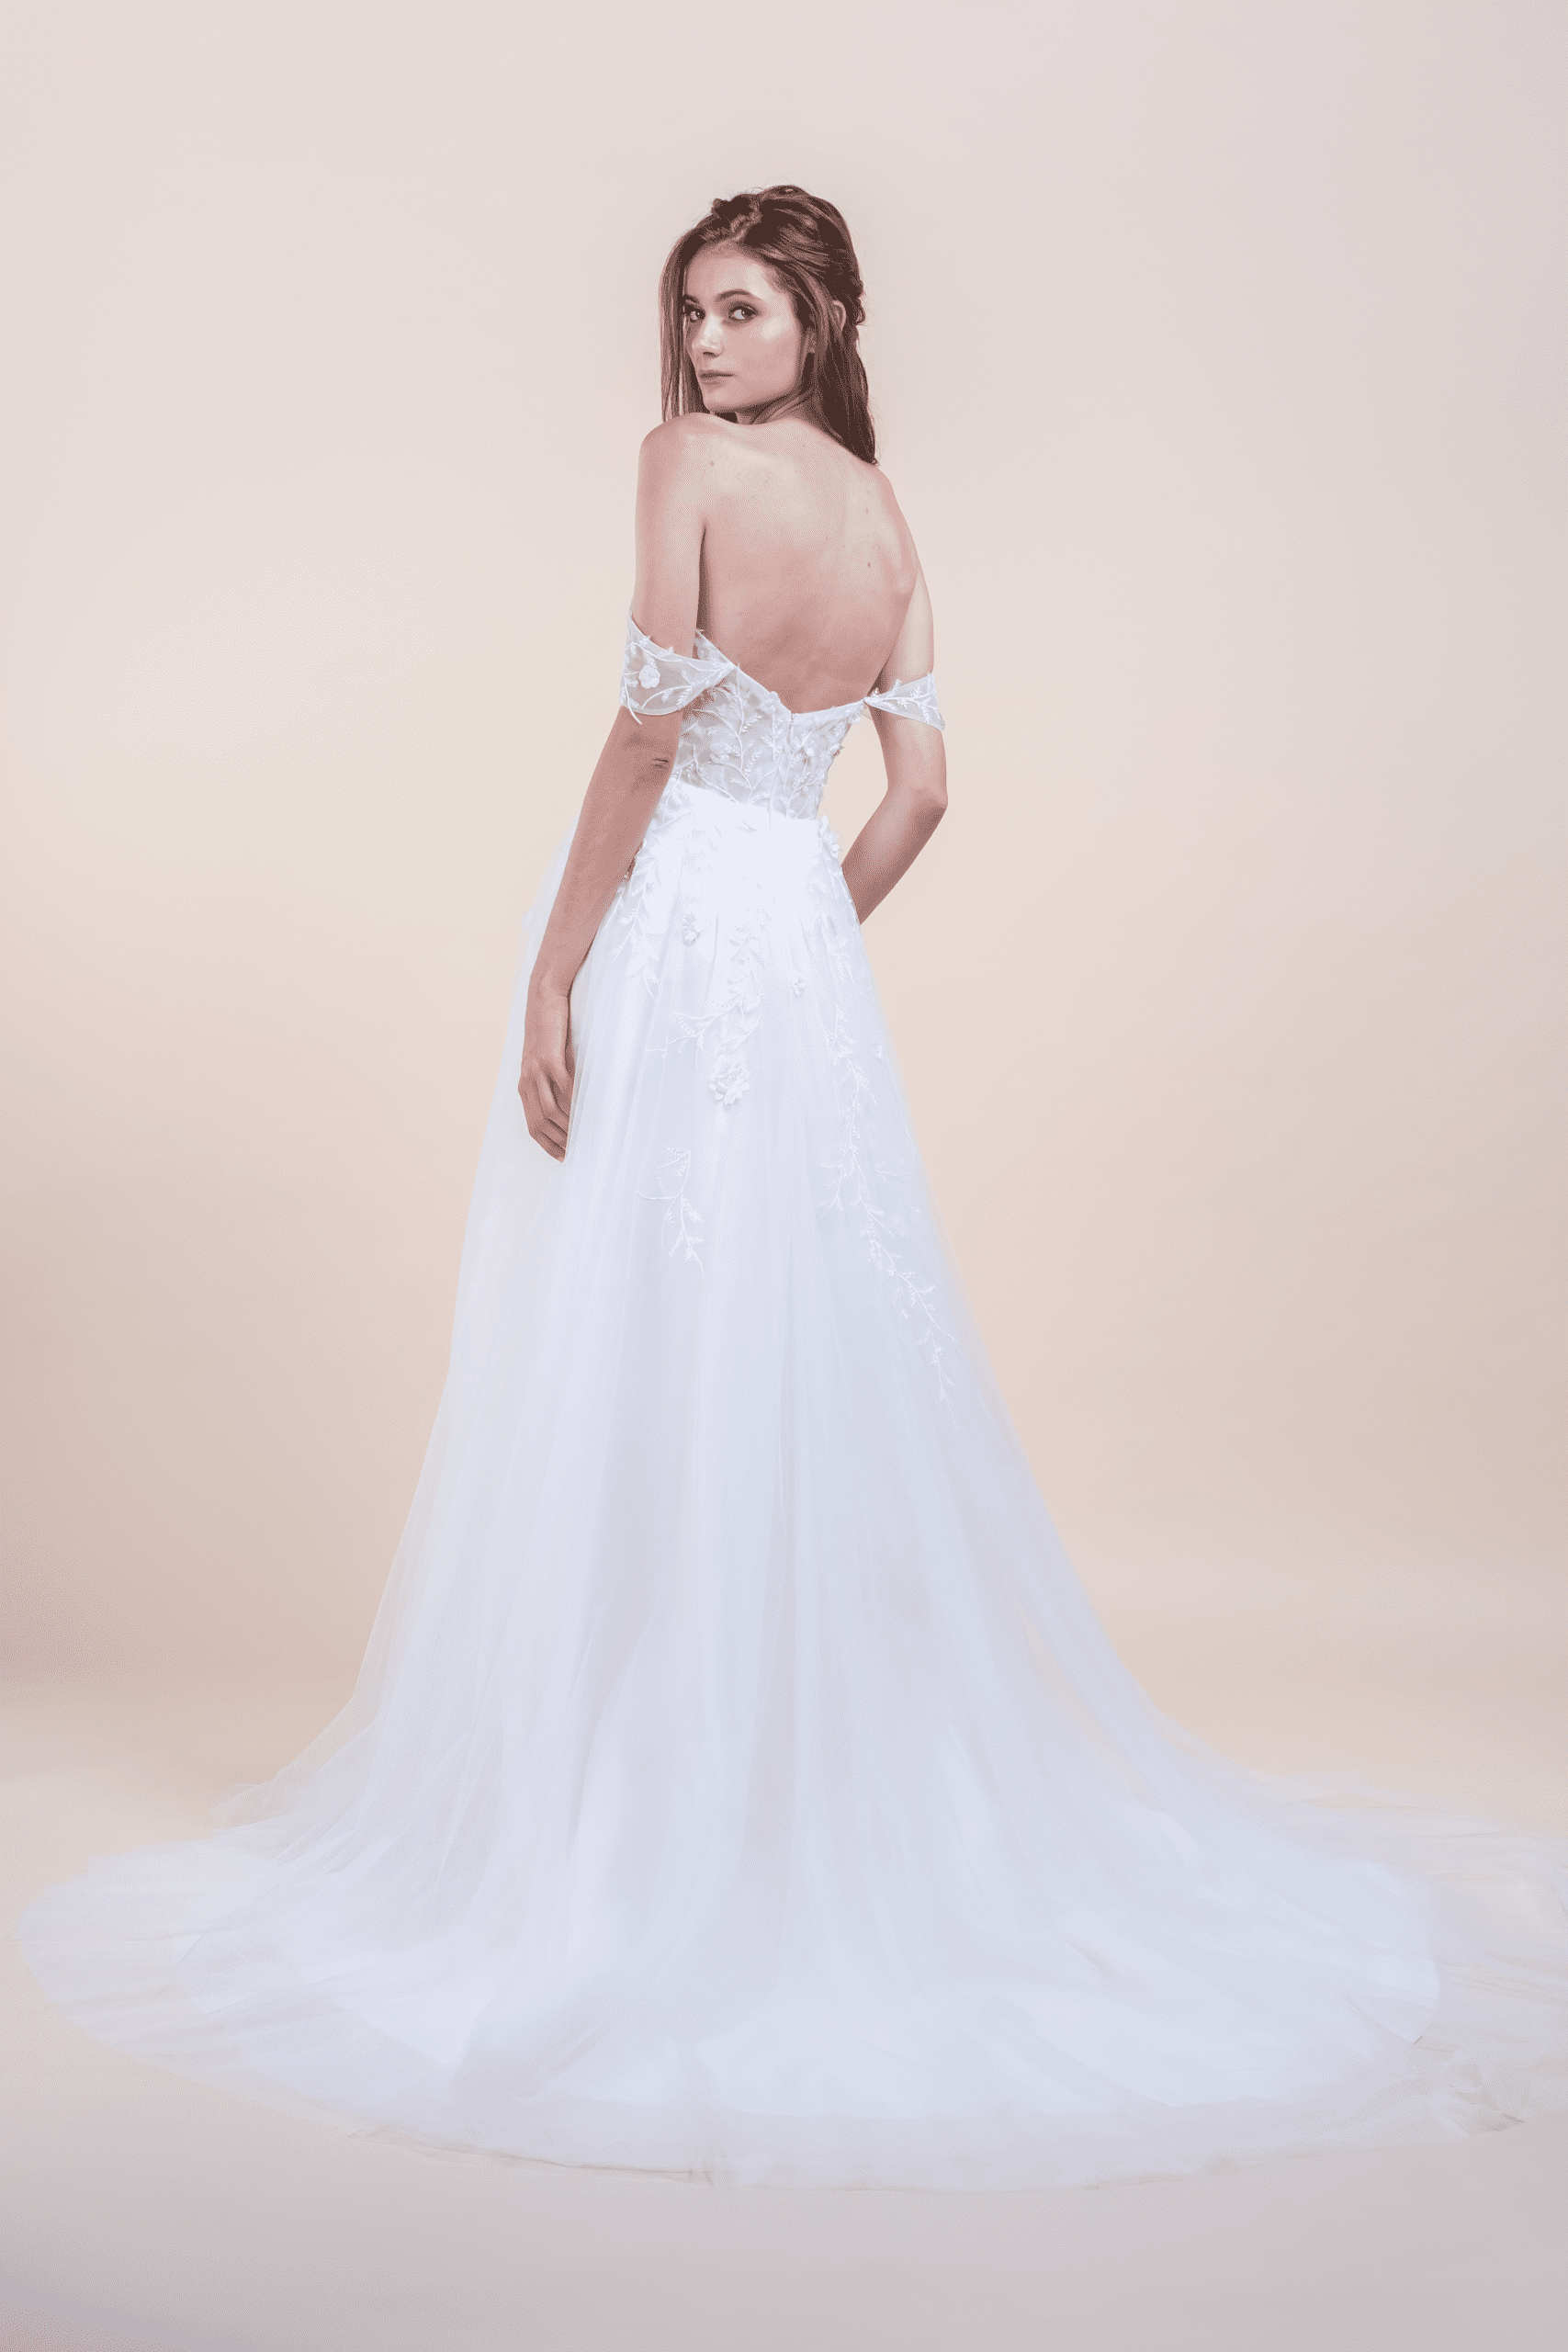 Athena-affordable-Bridal-Dress-for-rent-in-Singapore